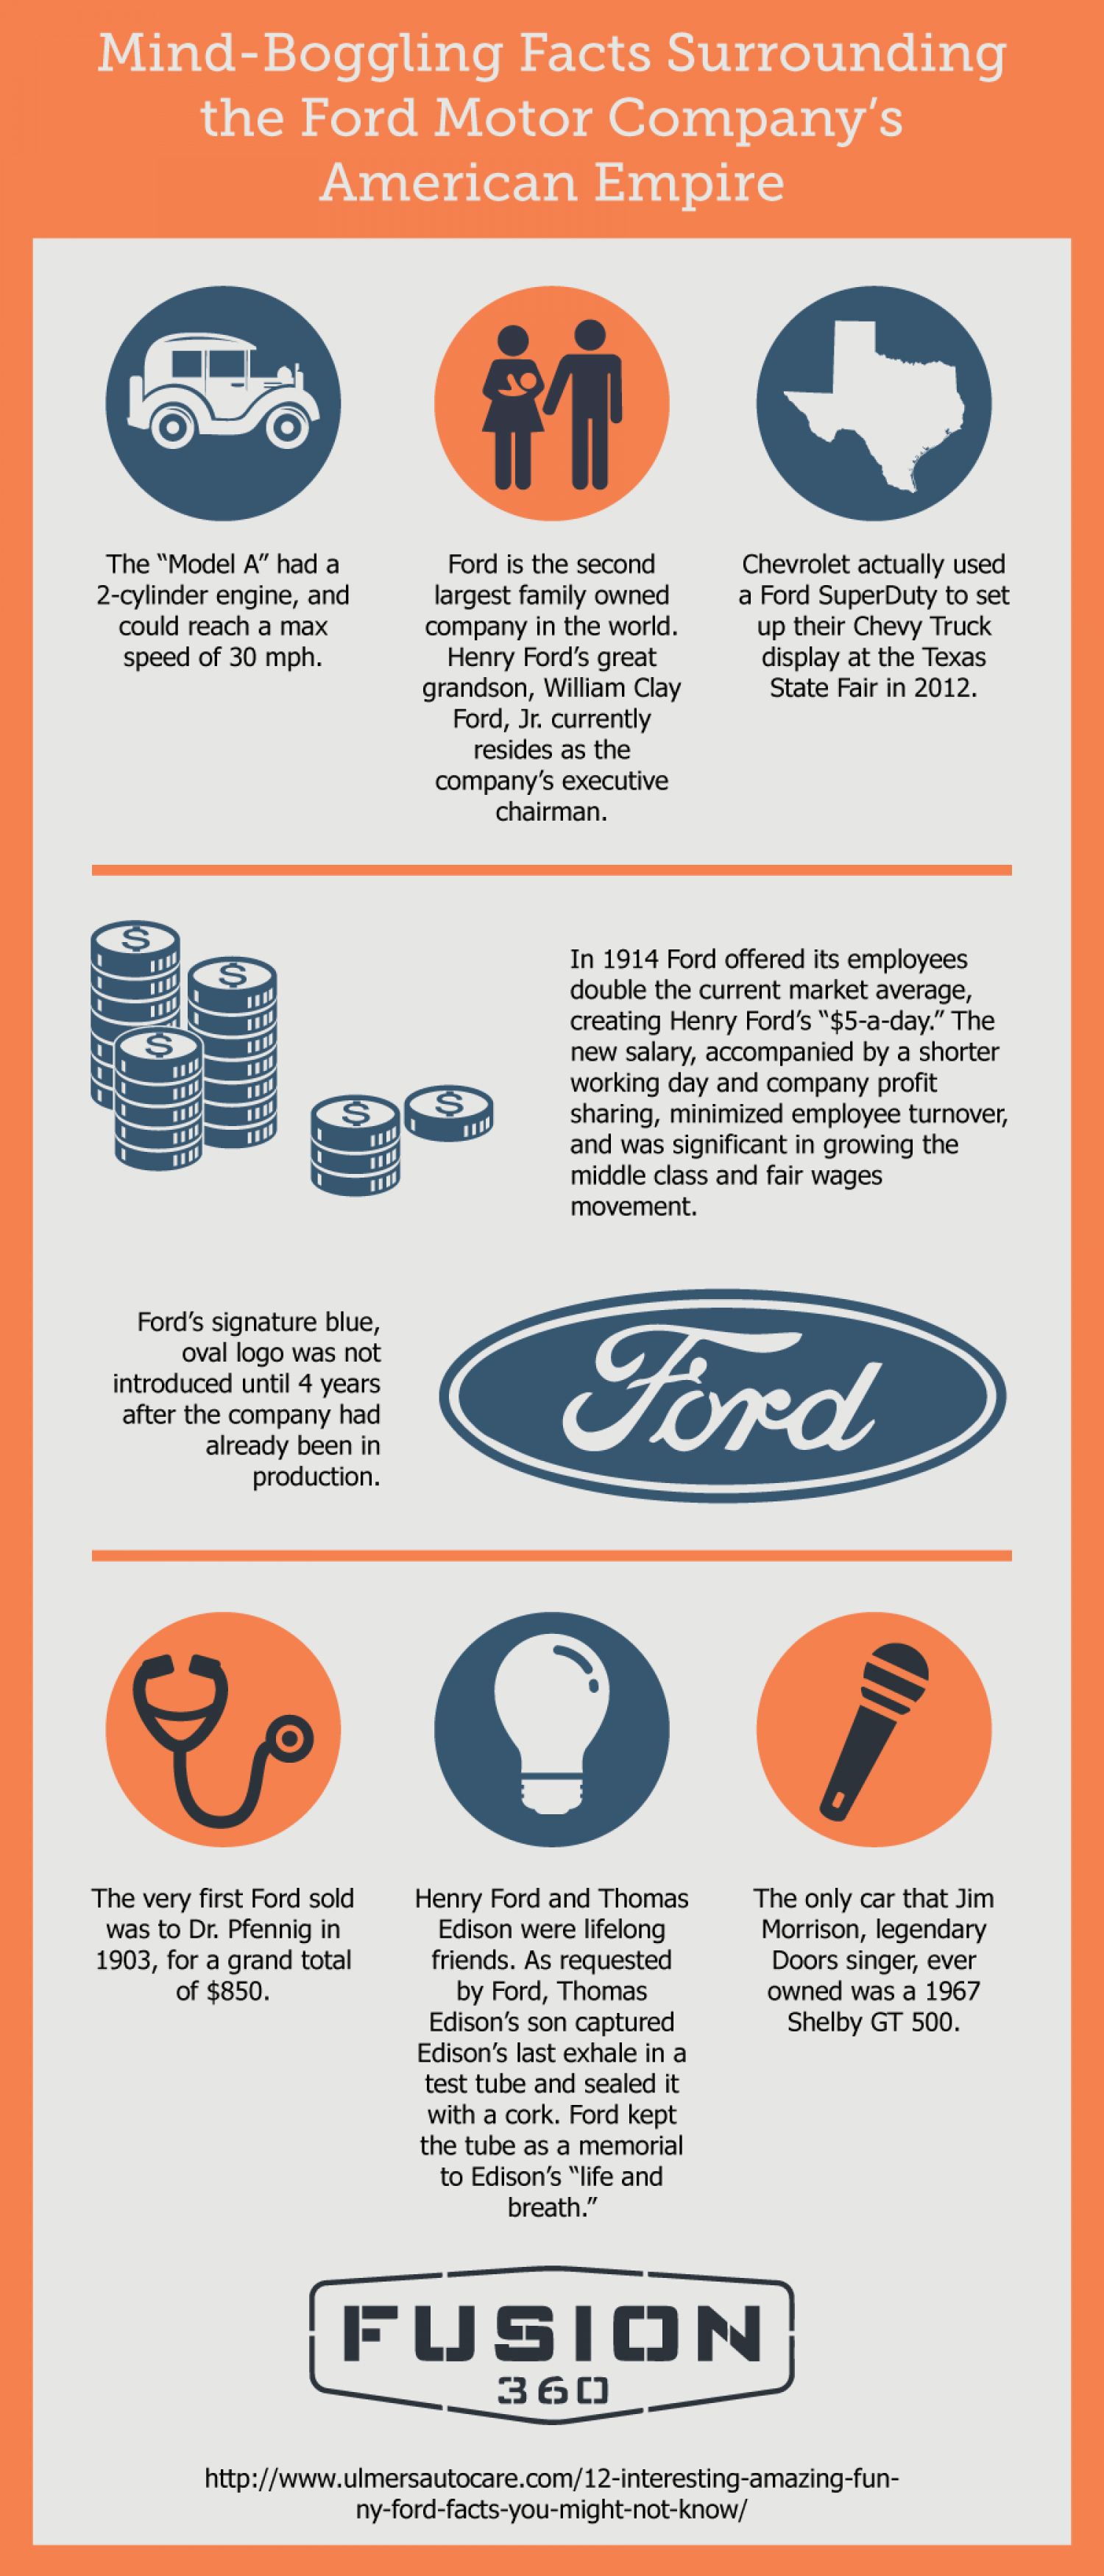 Mind-Boggling Facts Surrounding the Ford Motor Company's American Empire Infographic